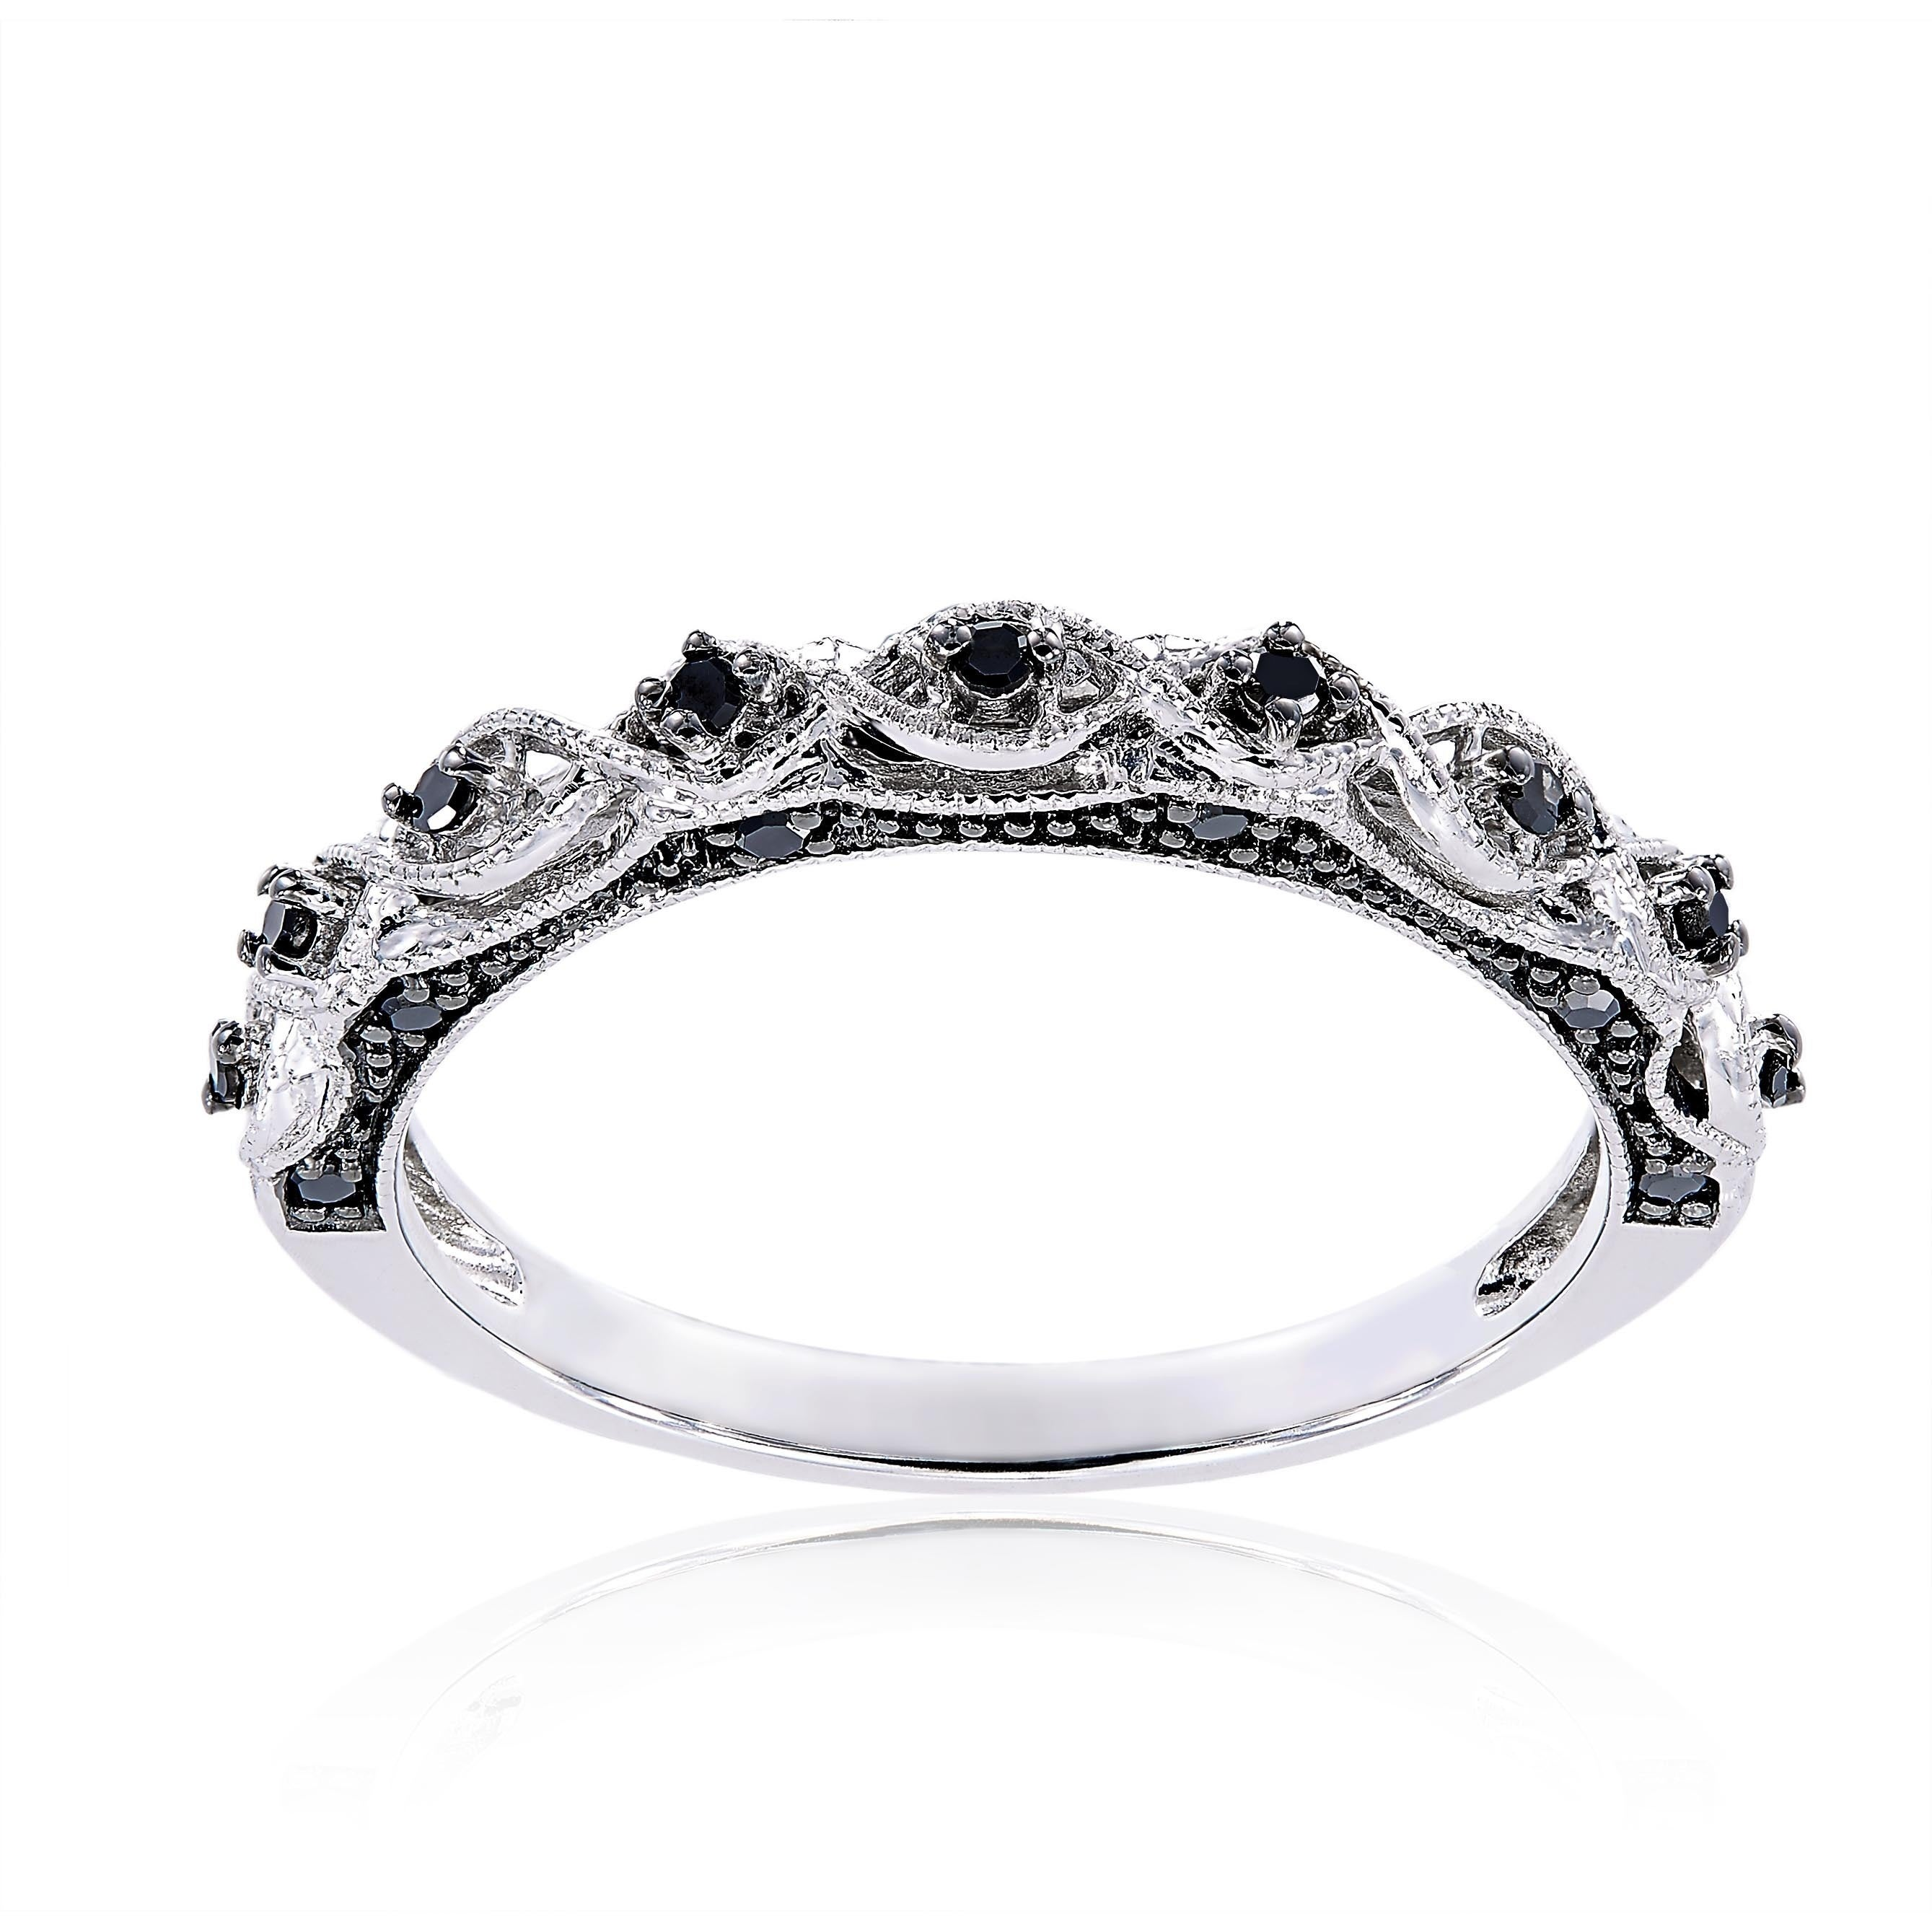 g h tdw shipping today rings promise diamond jewelry month ring watches free set silver bridal overstock product halo sterling square